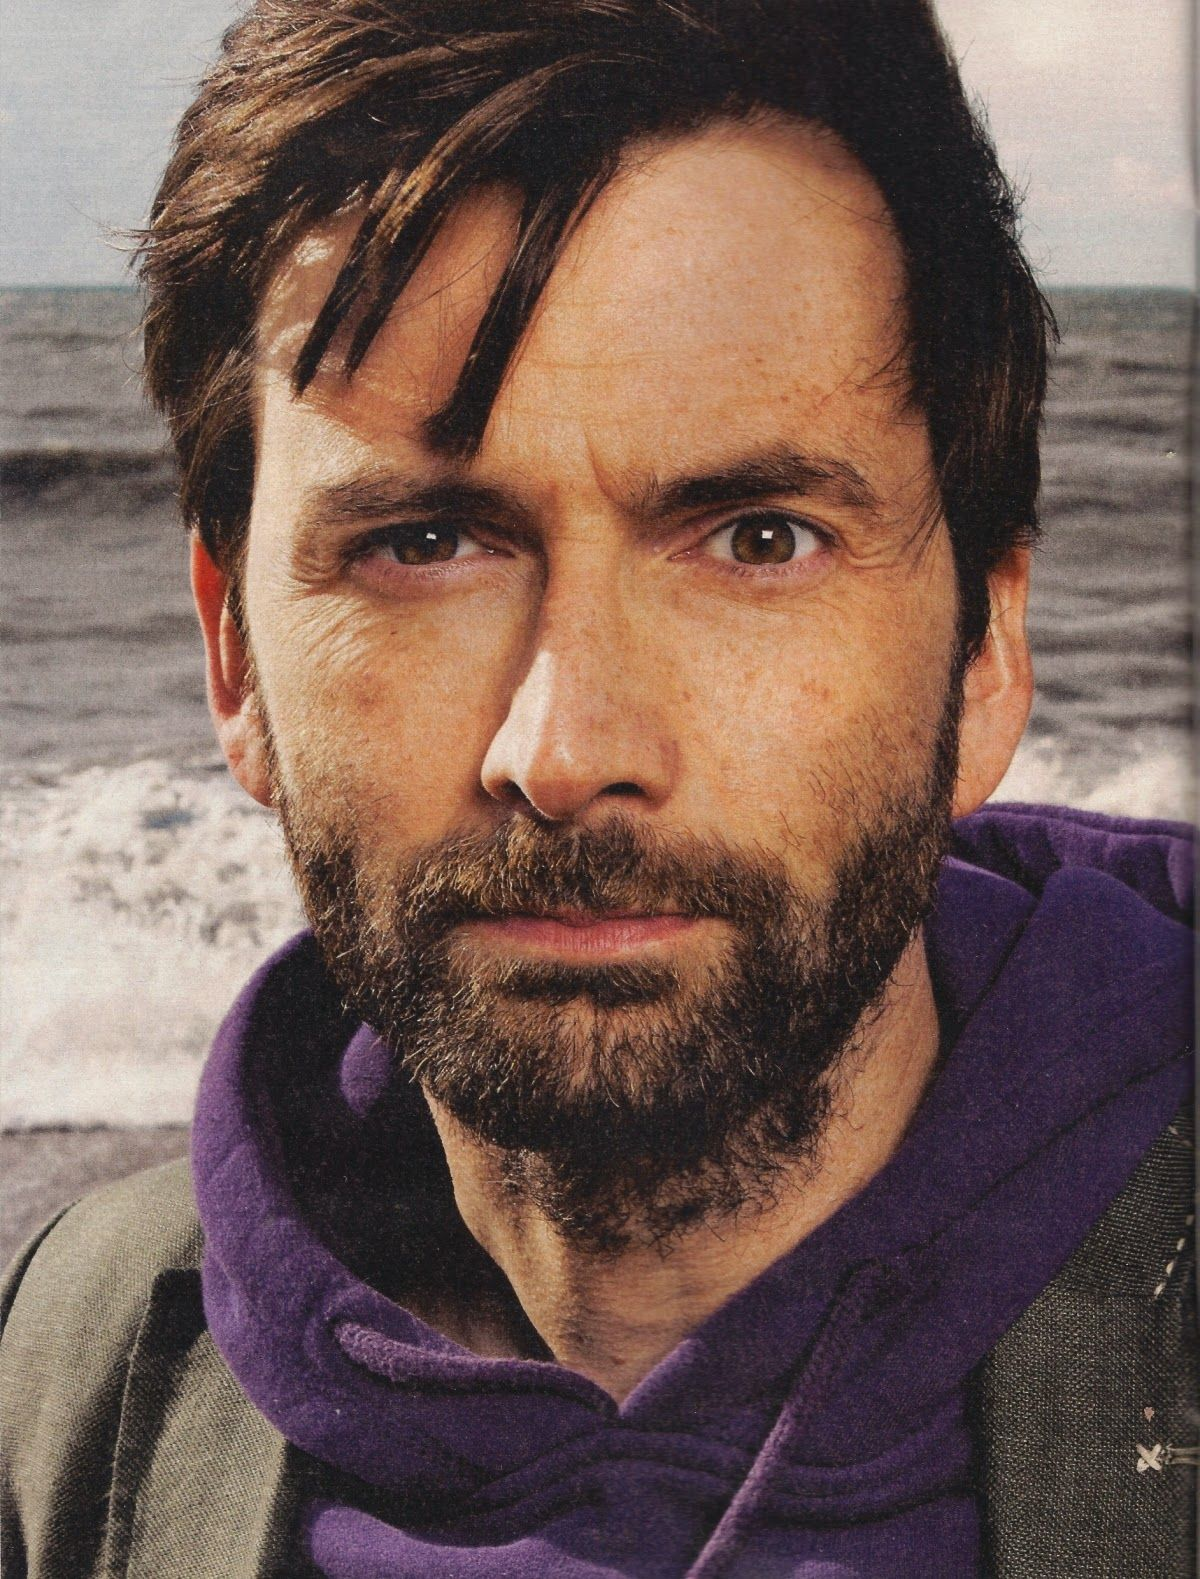 Scans of David Tennant's interview in Observer magazine